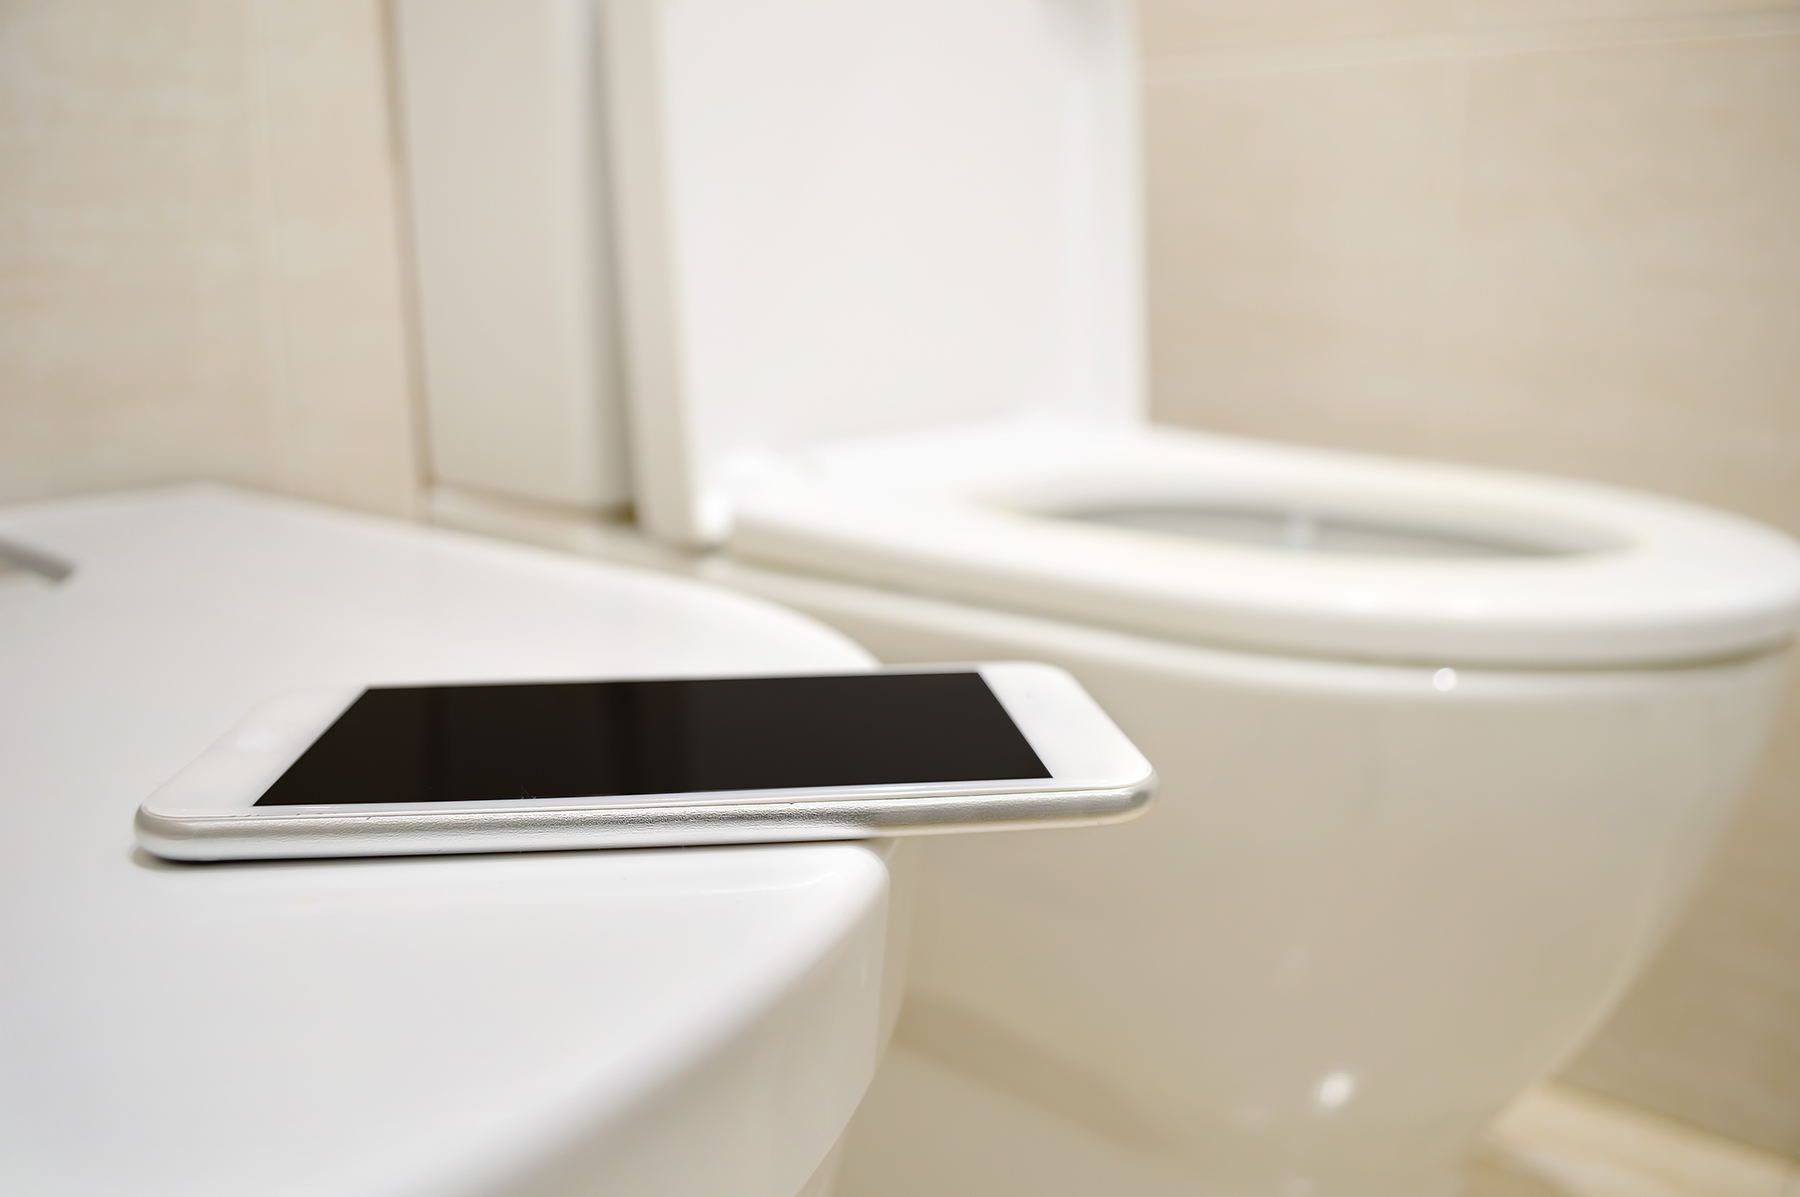 New Survey Reveals Just How Often People Use Their Phones in the Bathroom